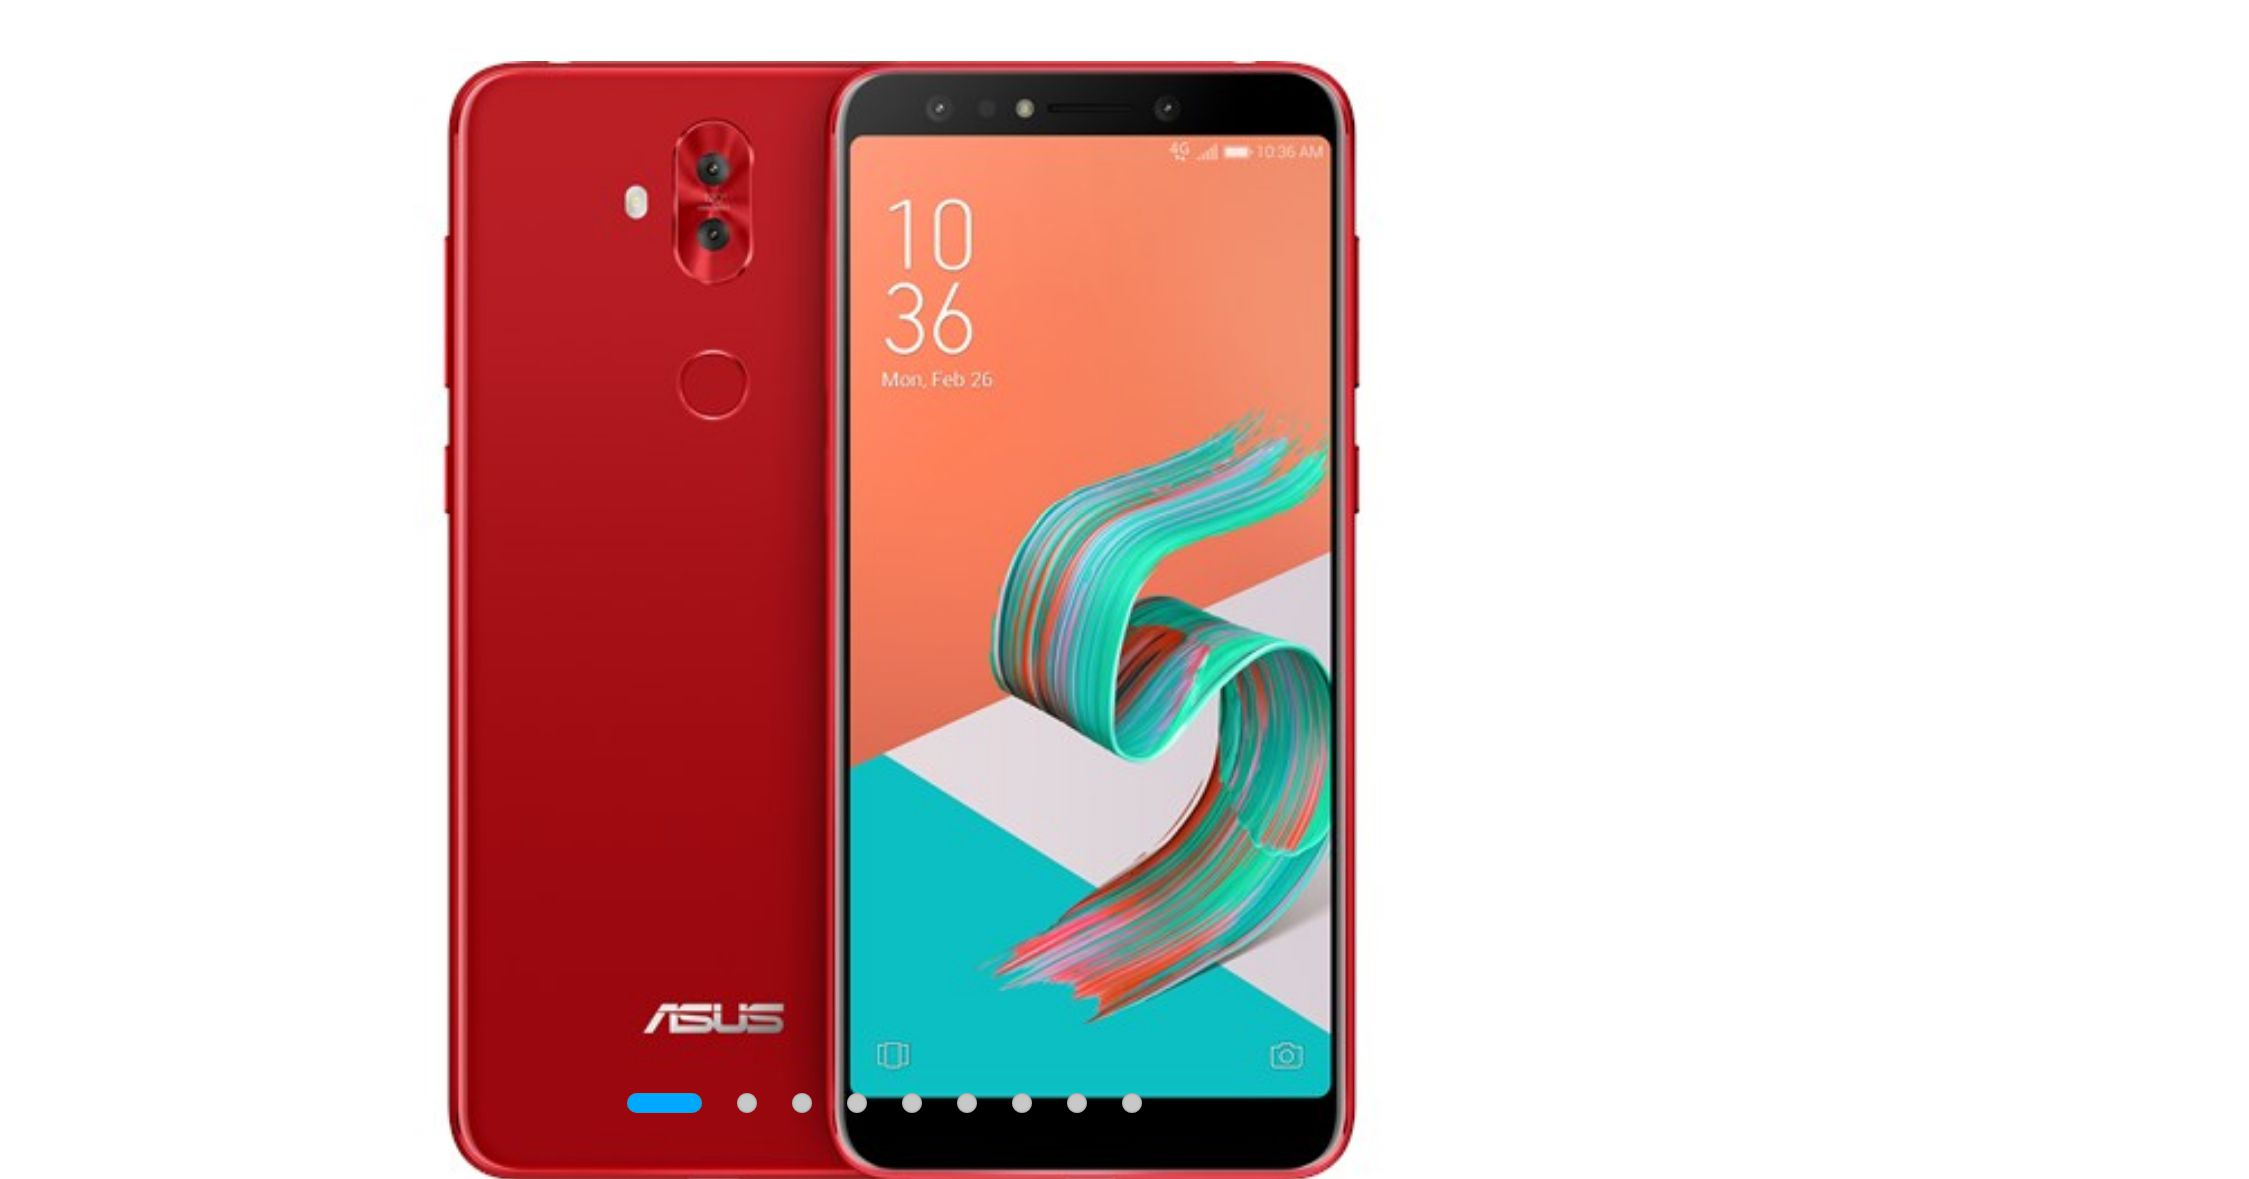 Asus ZenFone 5 Lite in red, front and back view